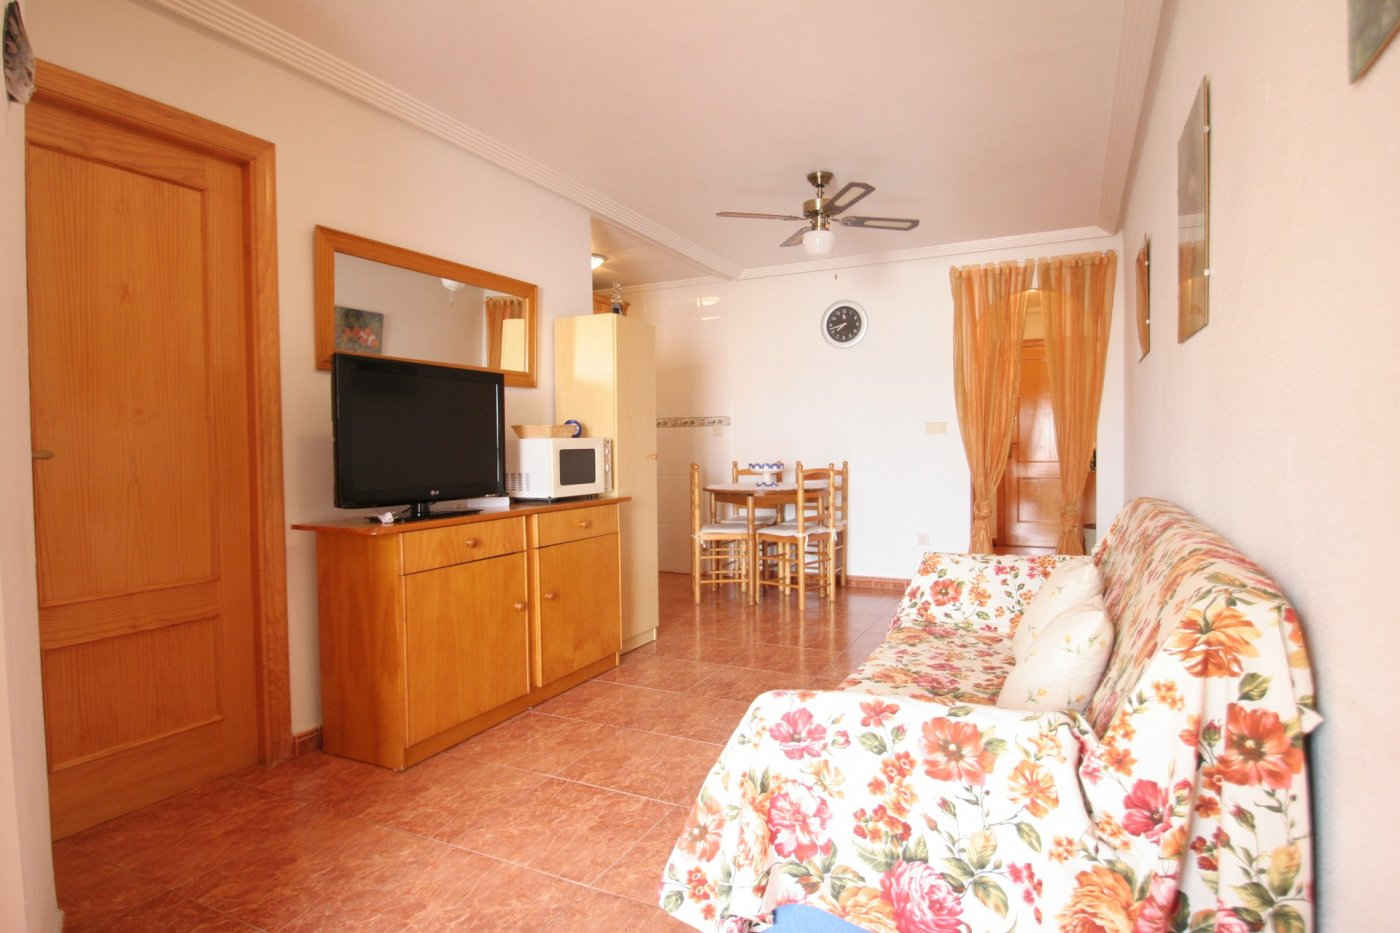 Apartment for sale in Playa de los locos, Torrevieja